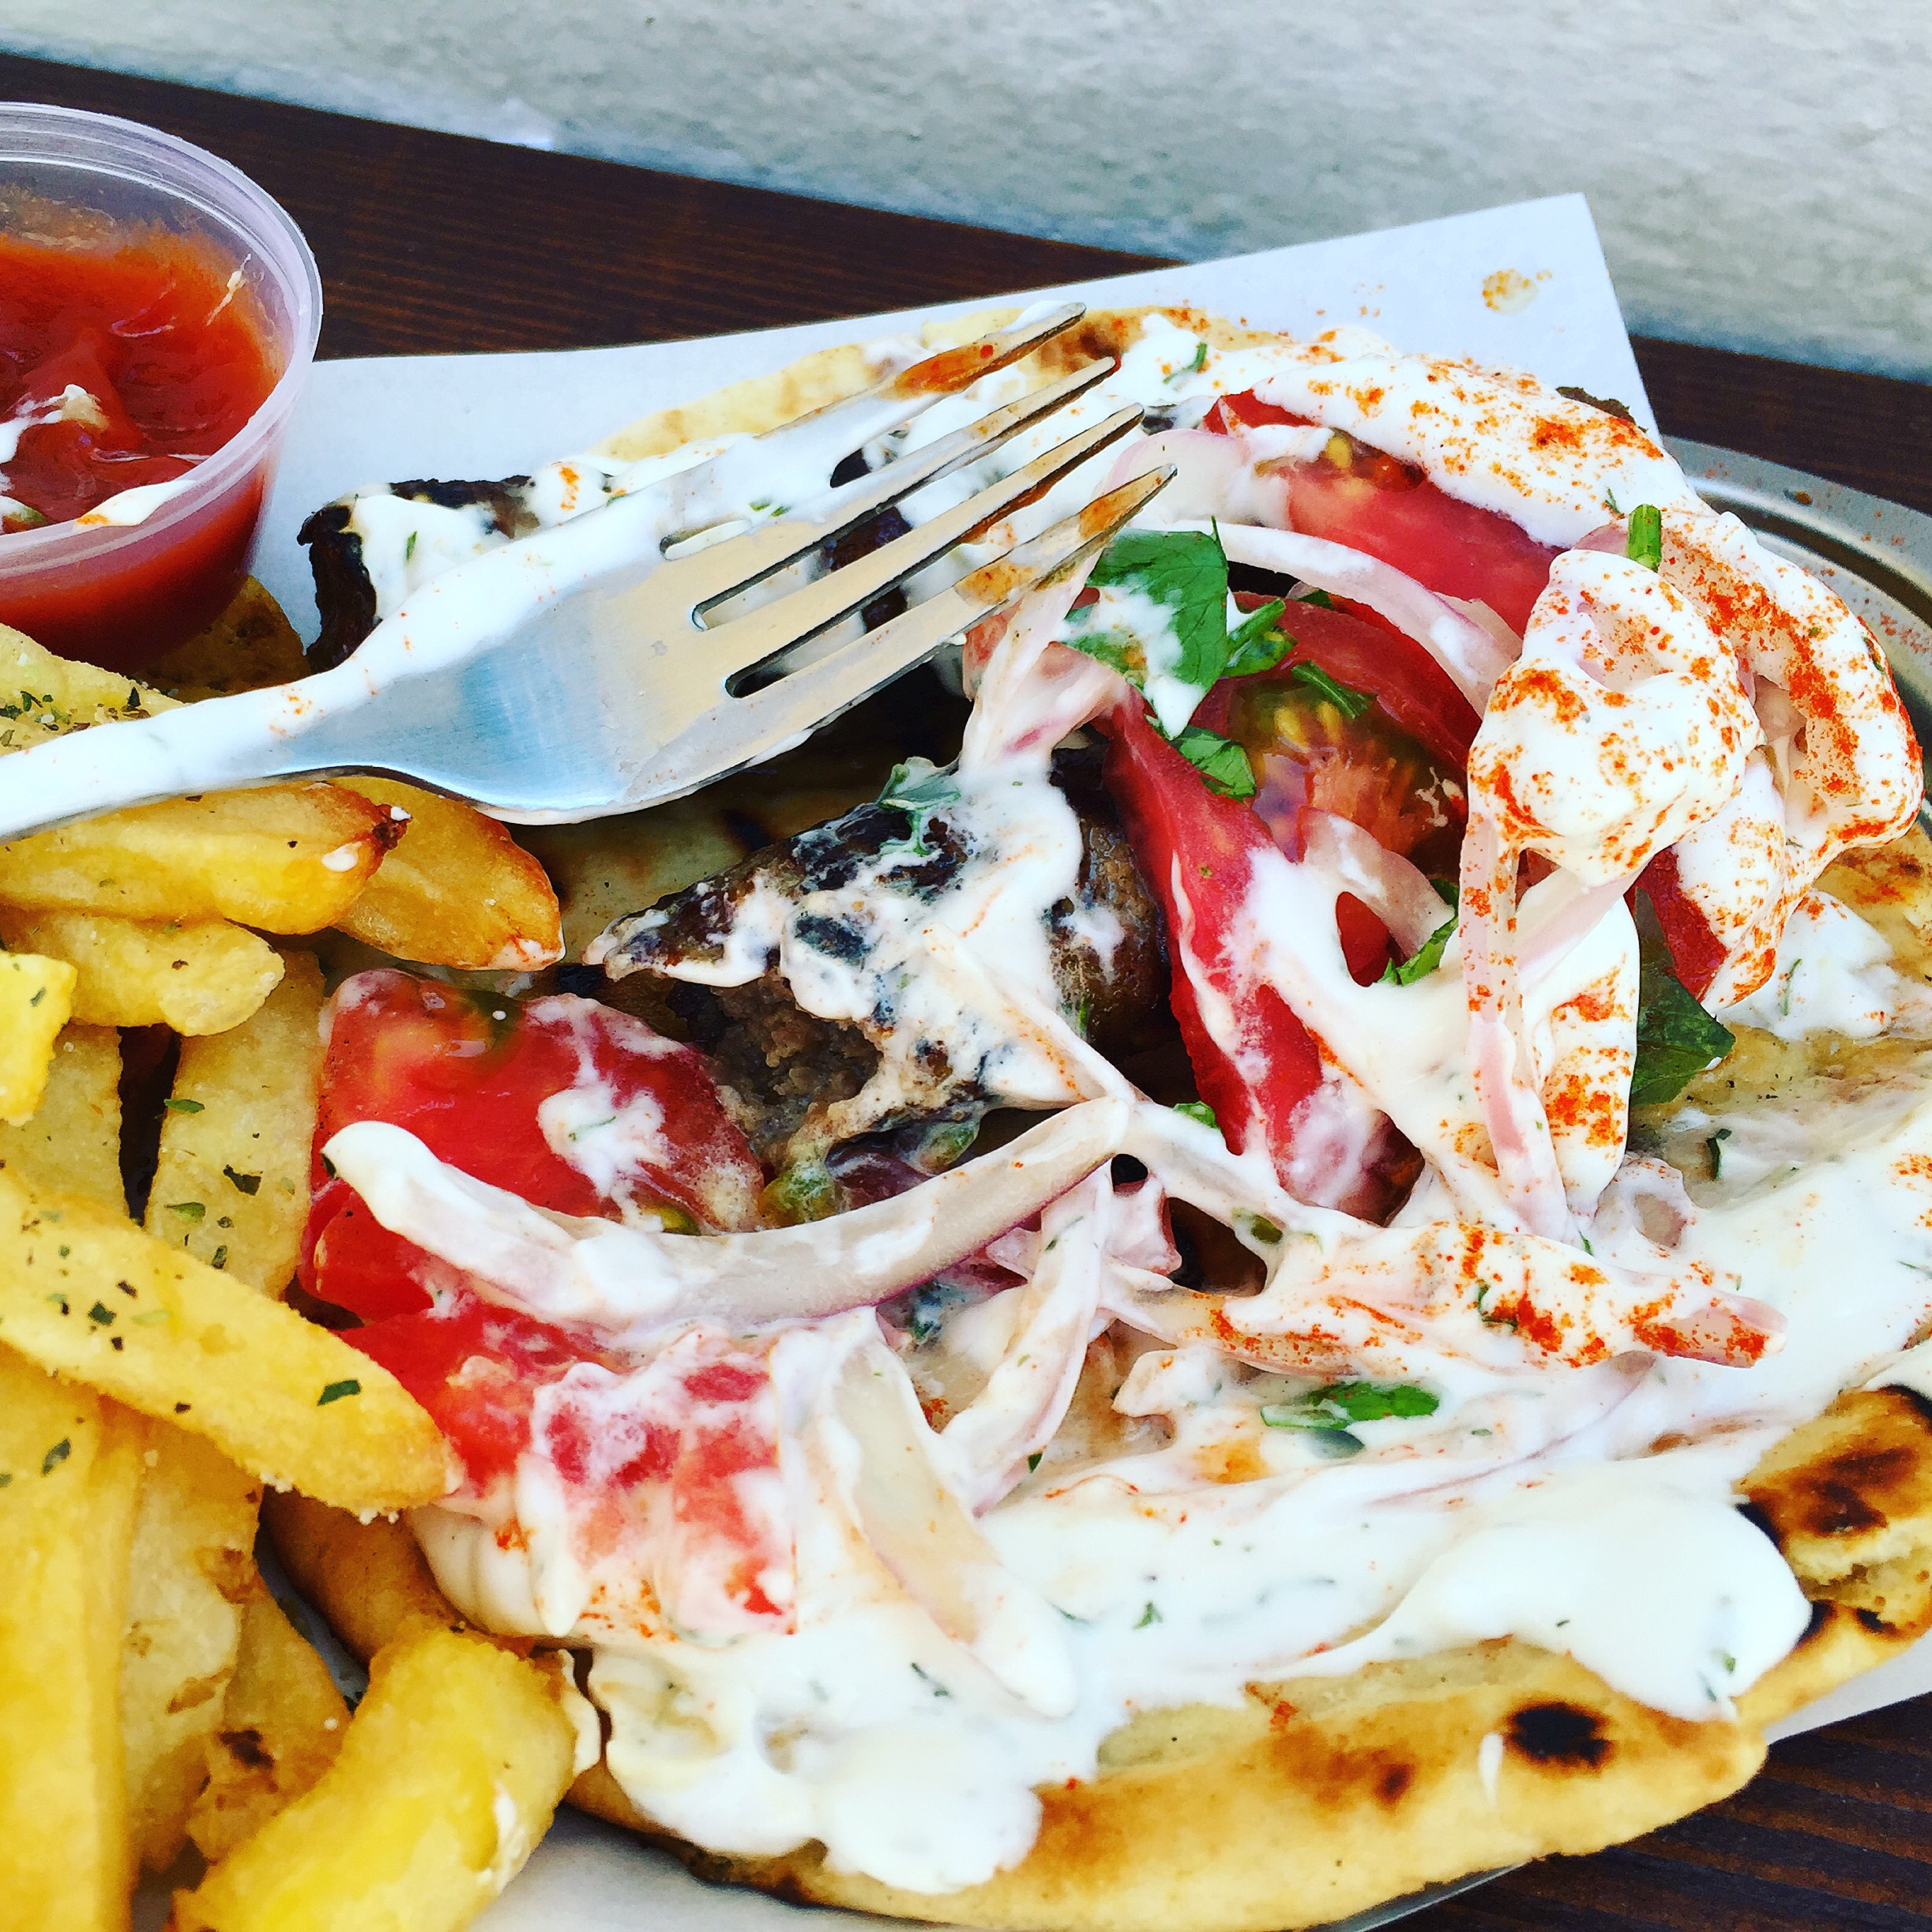 Messy beautiful kebab platter at Pitogyro...hands down best street food in Santorini